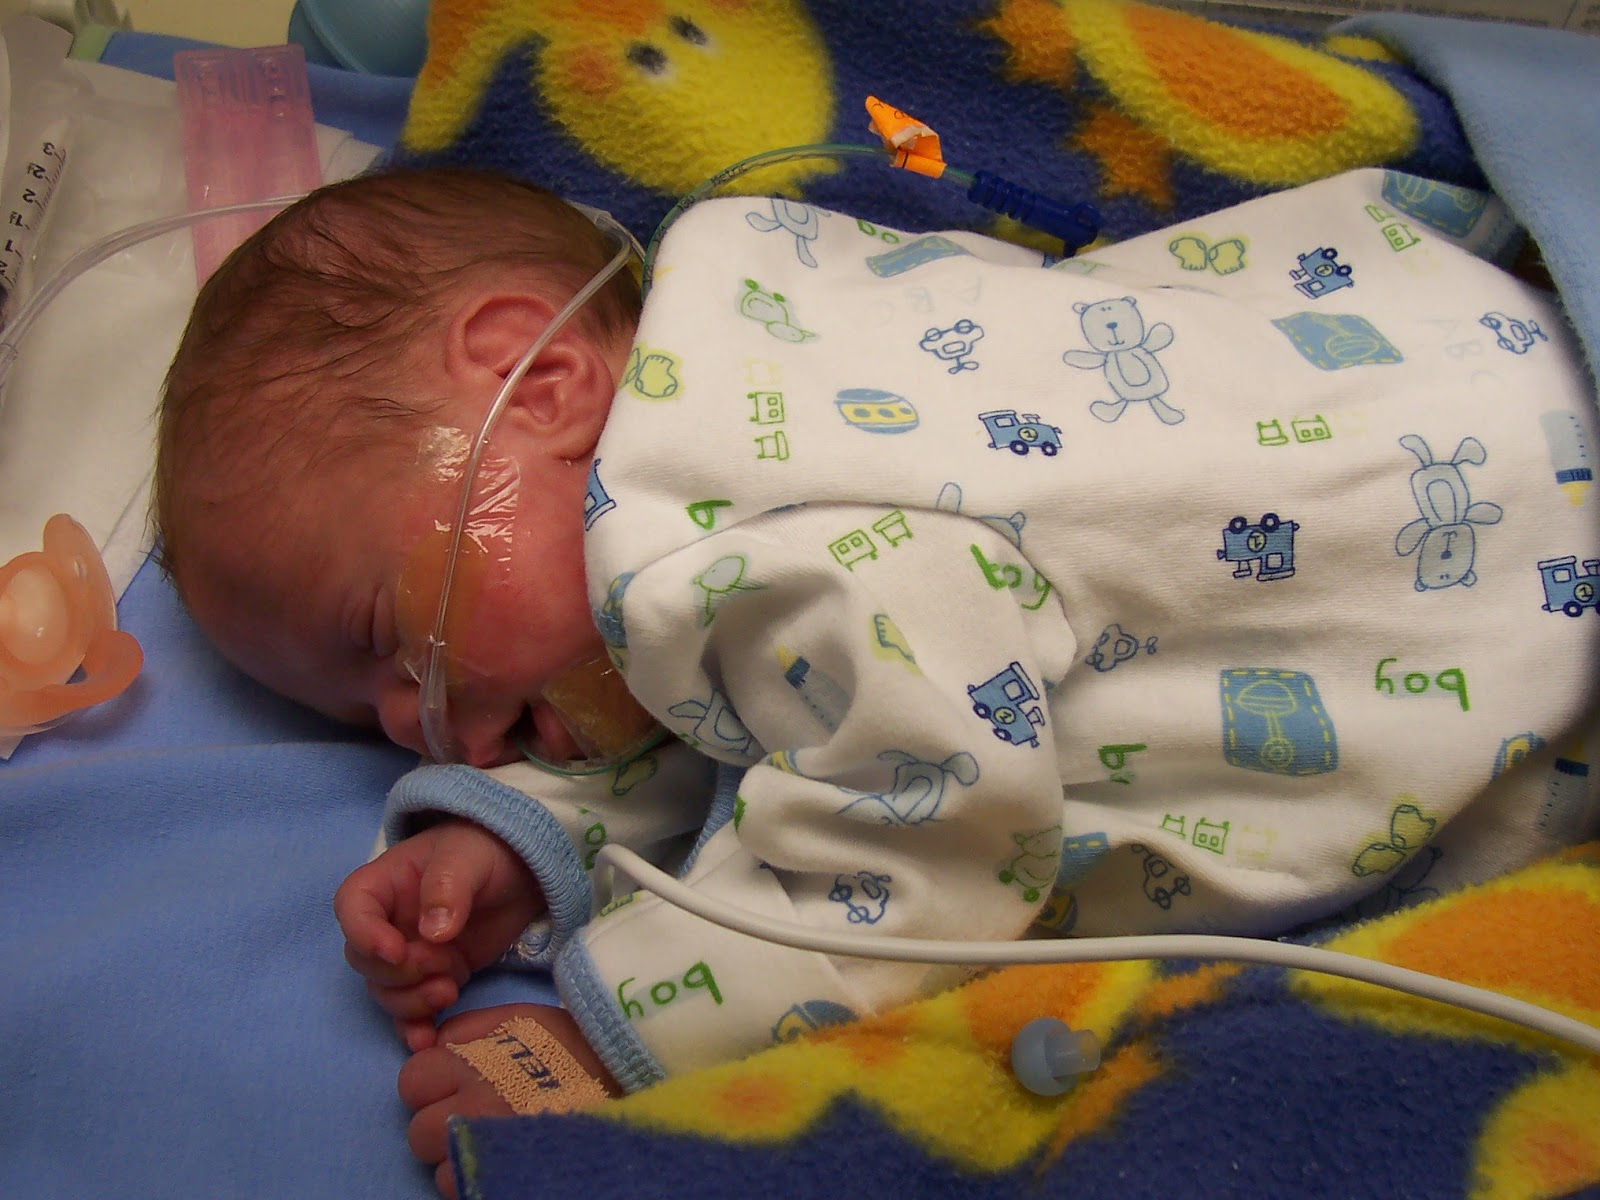 Nicumama Blog A Moms Guide To The Nicu And Preemie Experience Prolacta Dha For Mother Breast Milk Provides Important Energy That Infants Need Along With Ara Fatty Acids Aid In Development Of